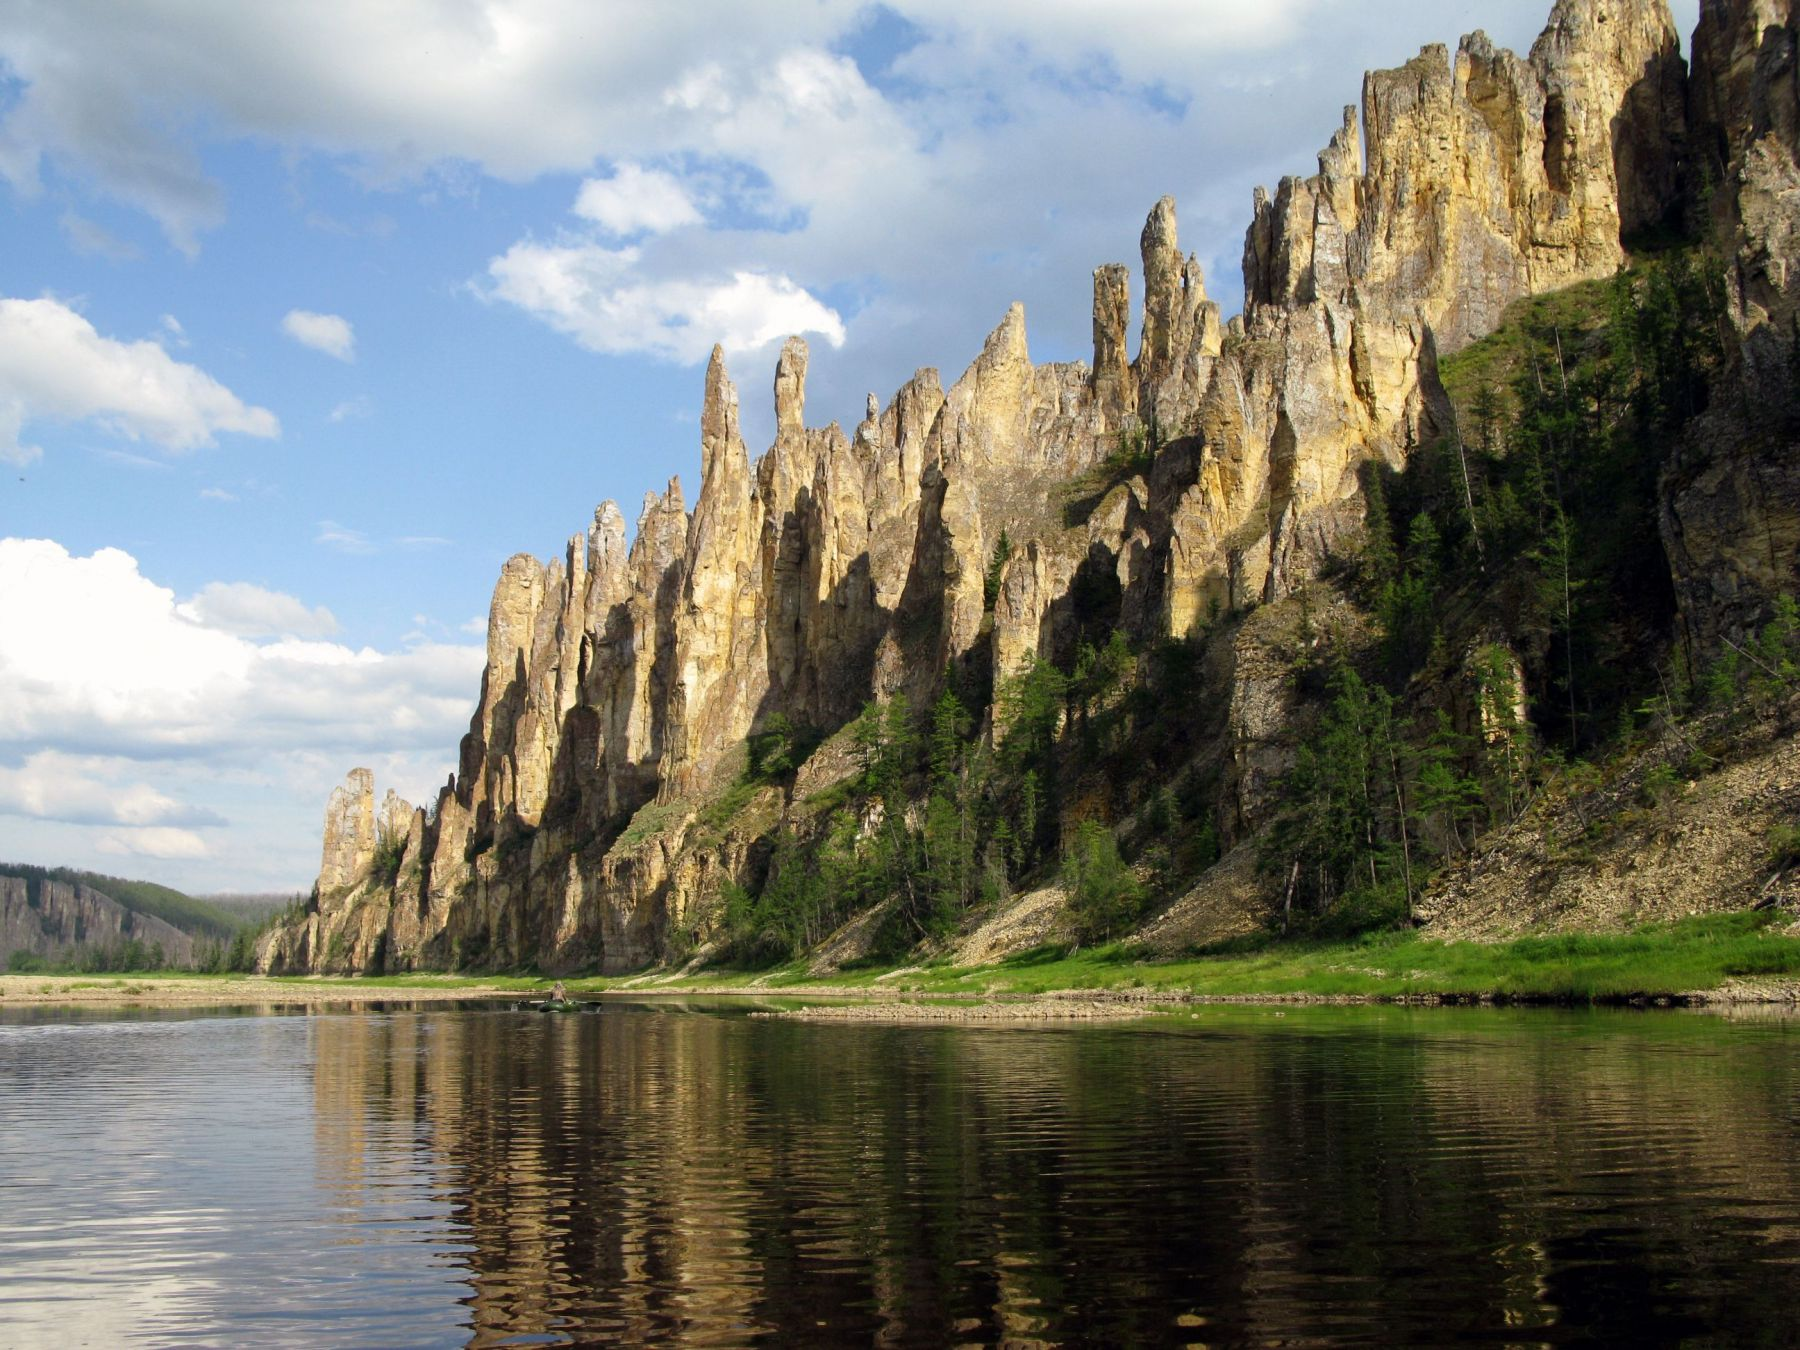 One of the most beautiful and mysterious natural wonders of Russia, Lena's Stone Forest is also one of the most ...